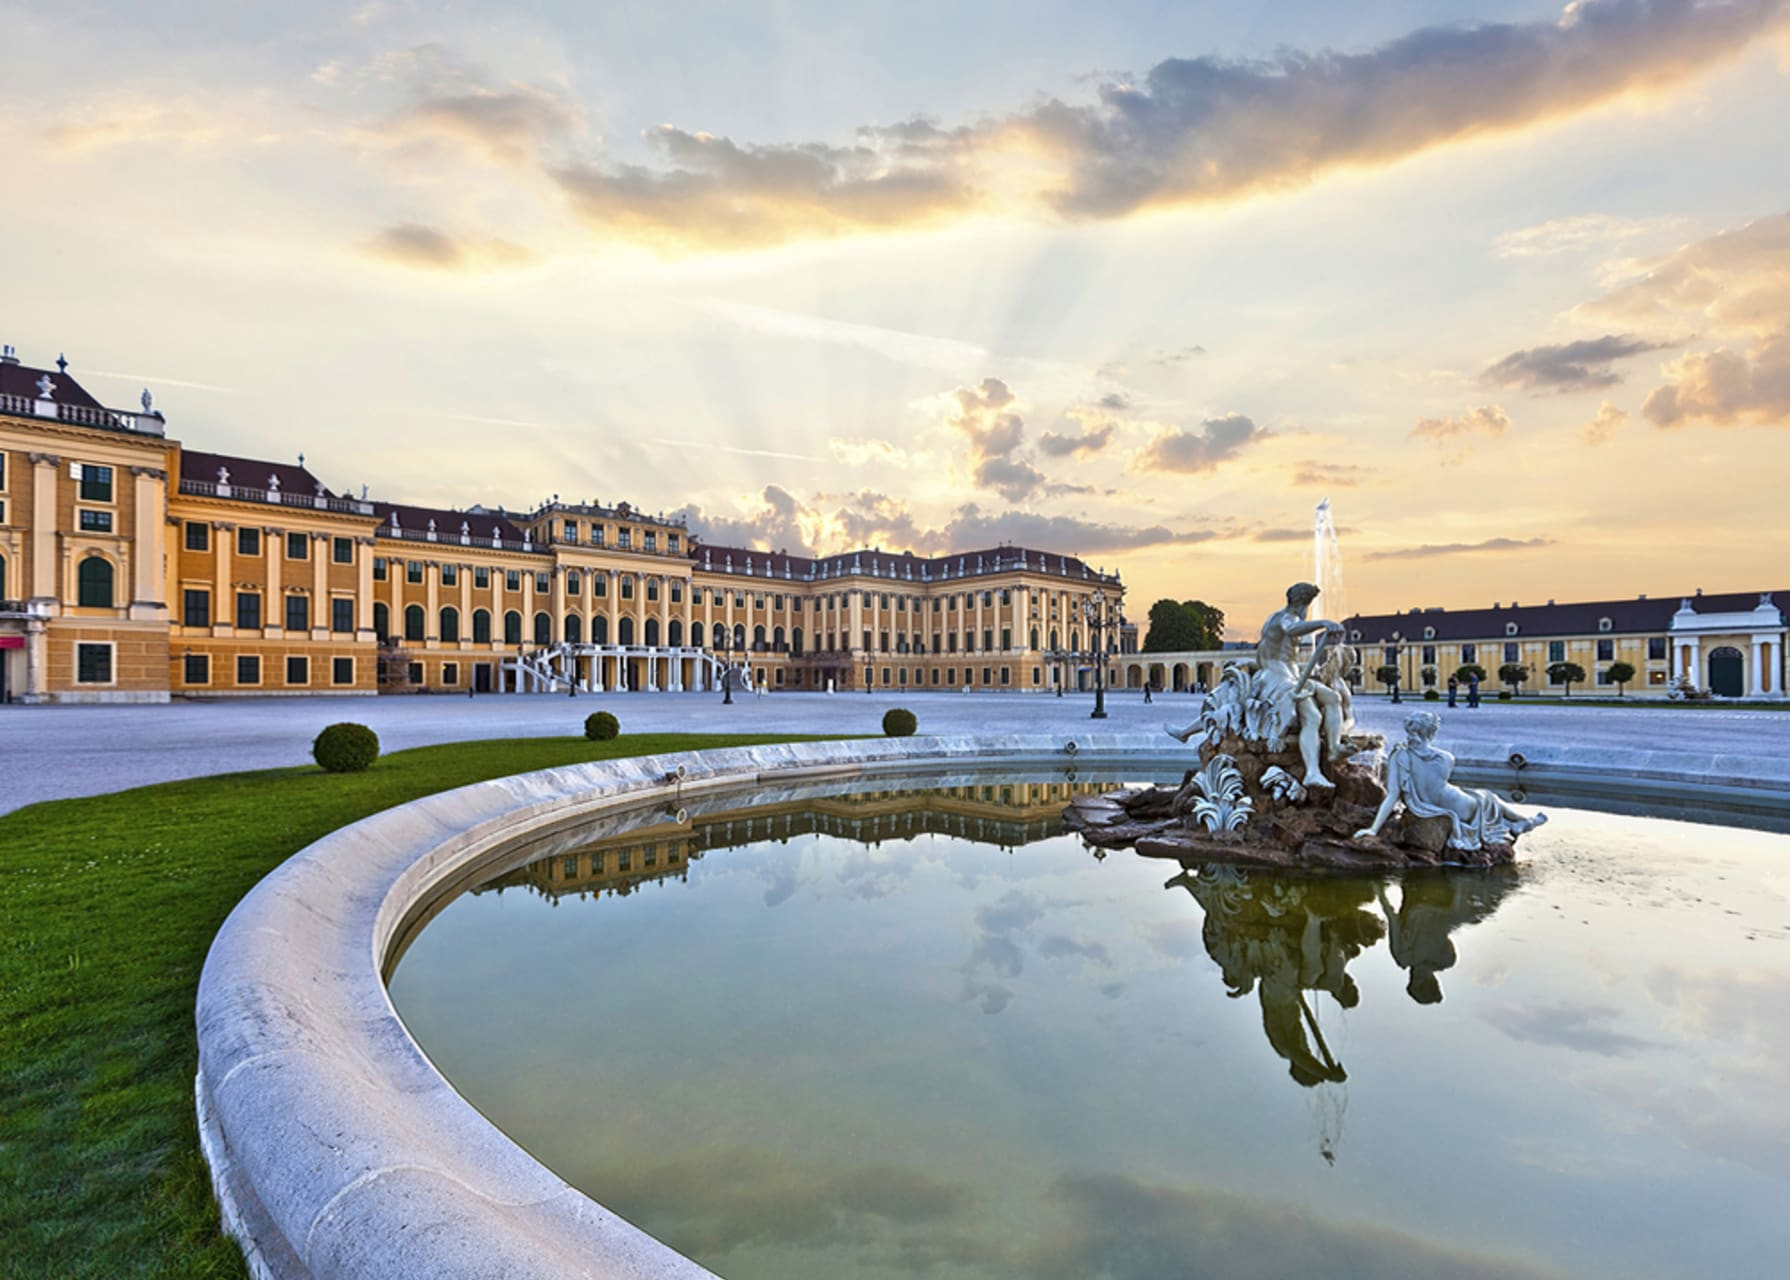 Vienna - The magnificent park of Schönbrunn Palace: where Marie Antoinette ate cake as a child